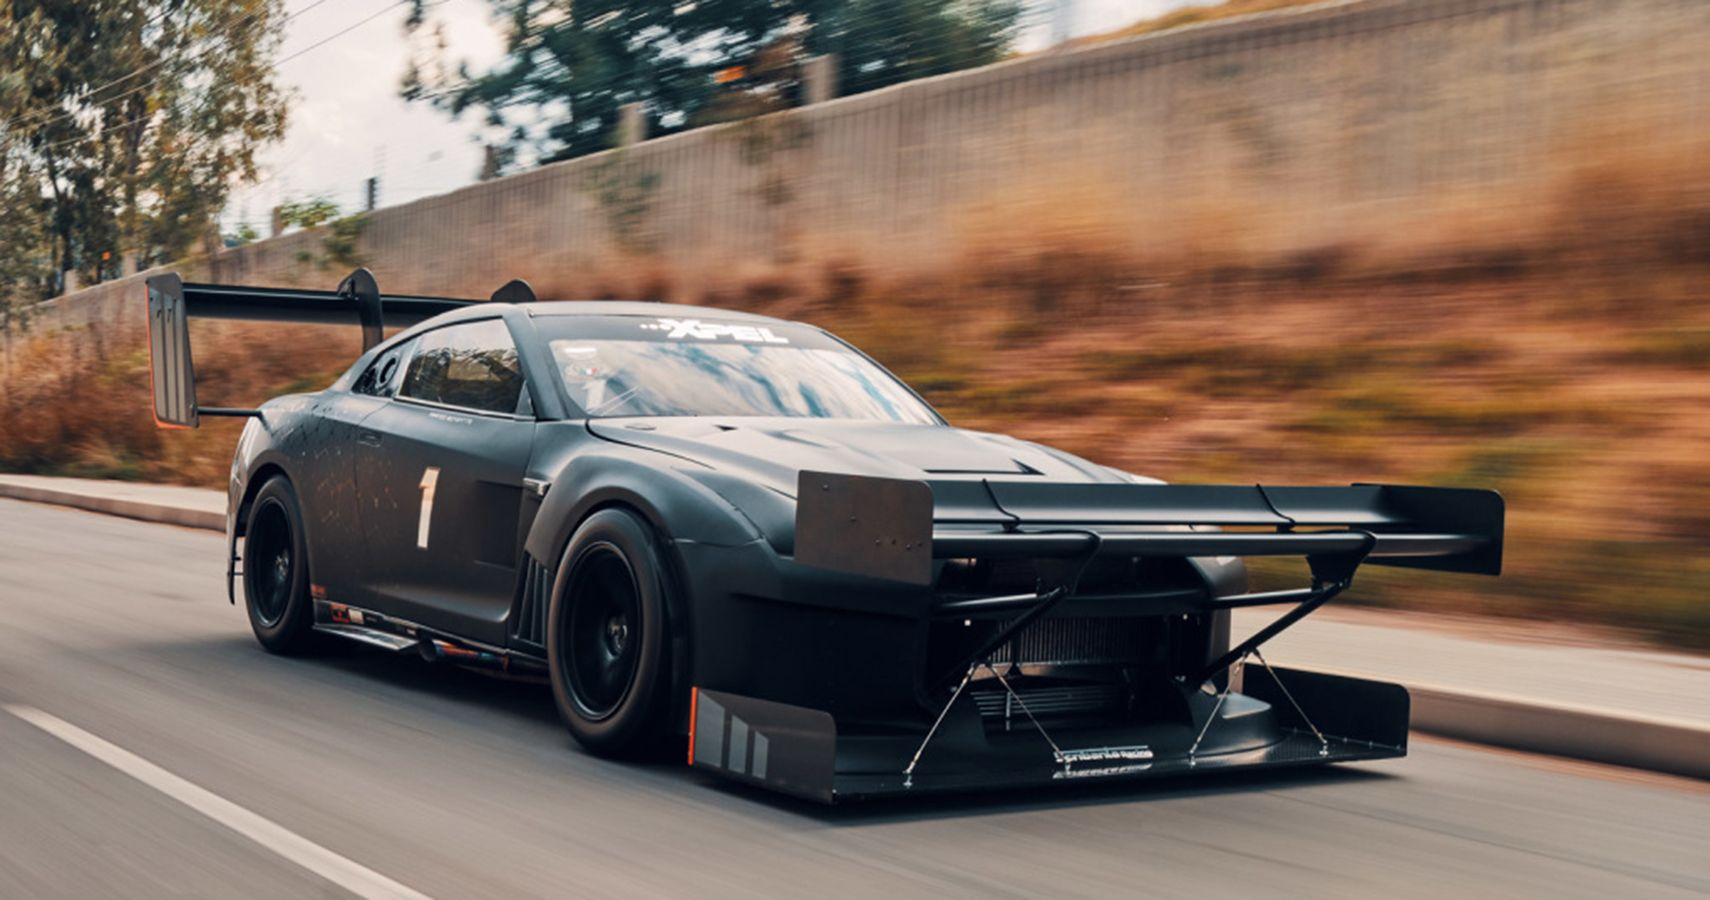 King Of The Hill! Scribante Racing's Aero-Laden R35 GT-R Seeks Action